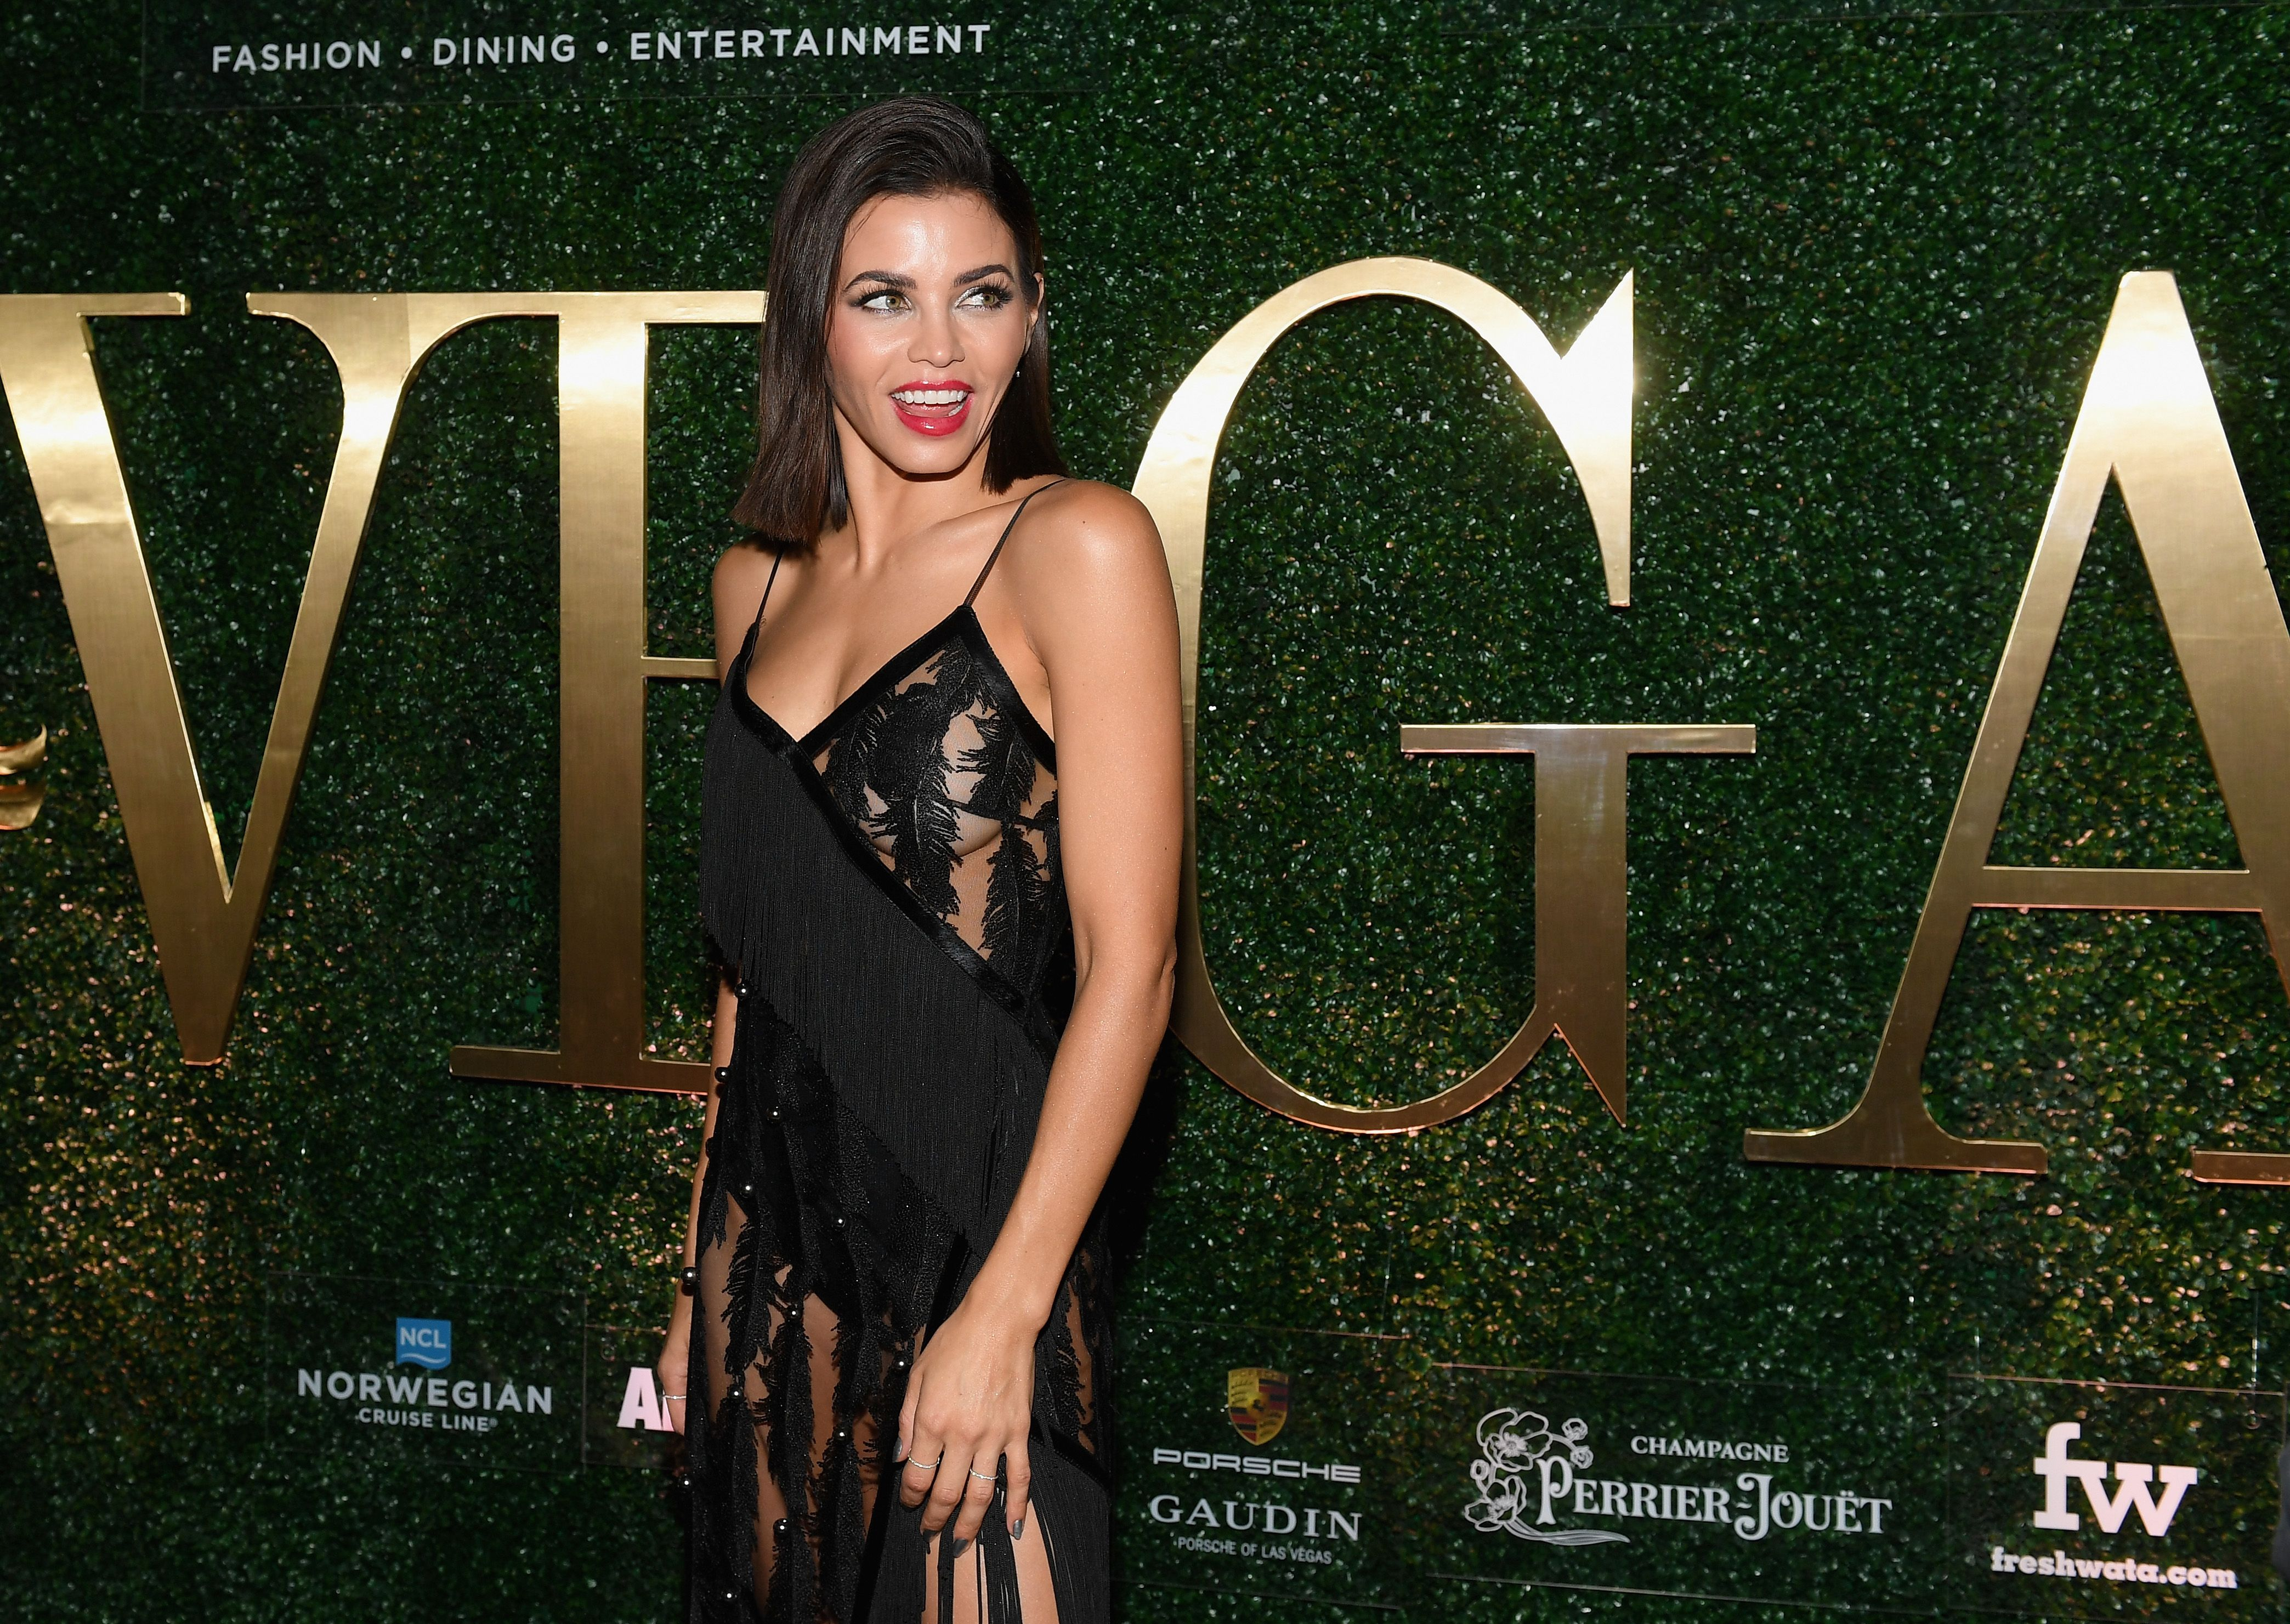 Jenna Dewan Opens Up About Life After Channing Tatum at Vegas Magazine  Party - Jenna Dewan Talks About Channing Tatum